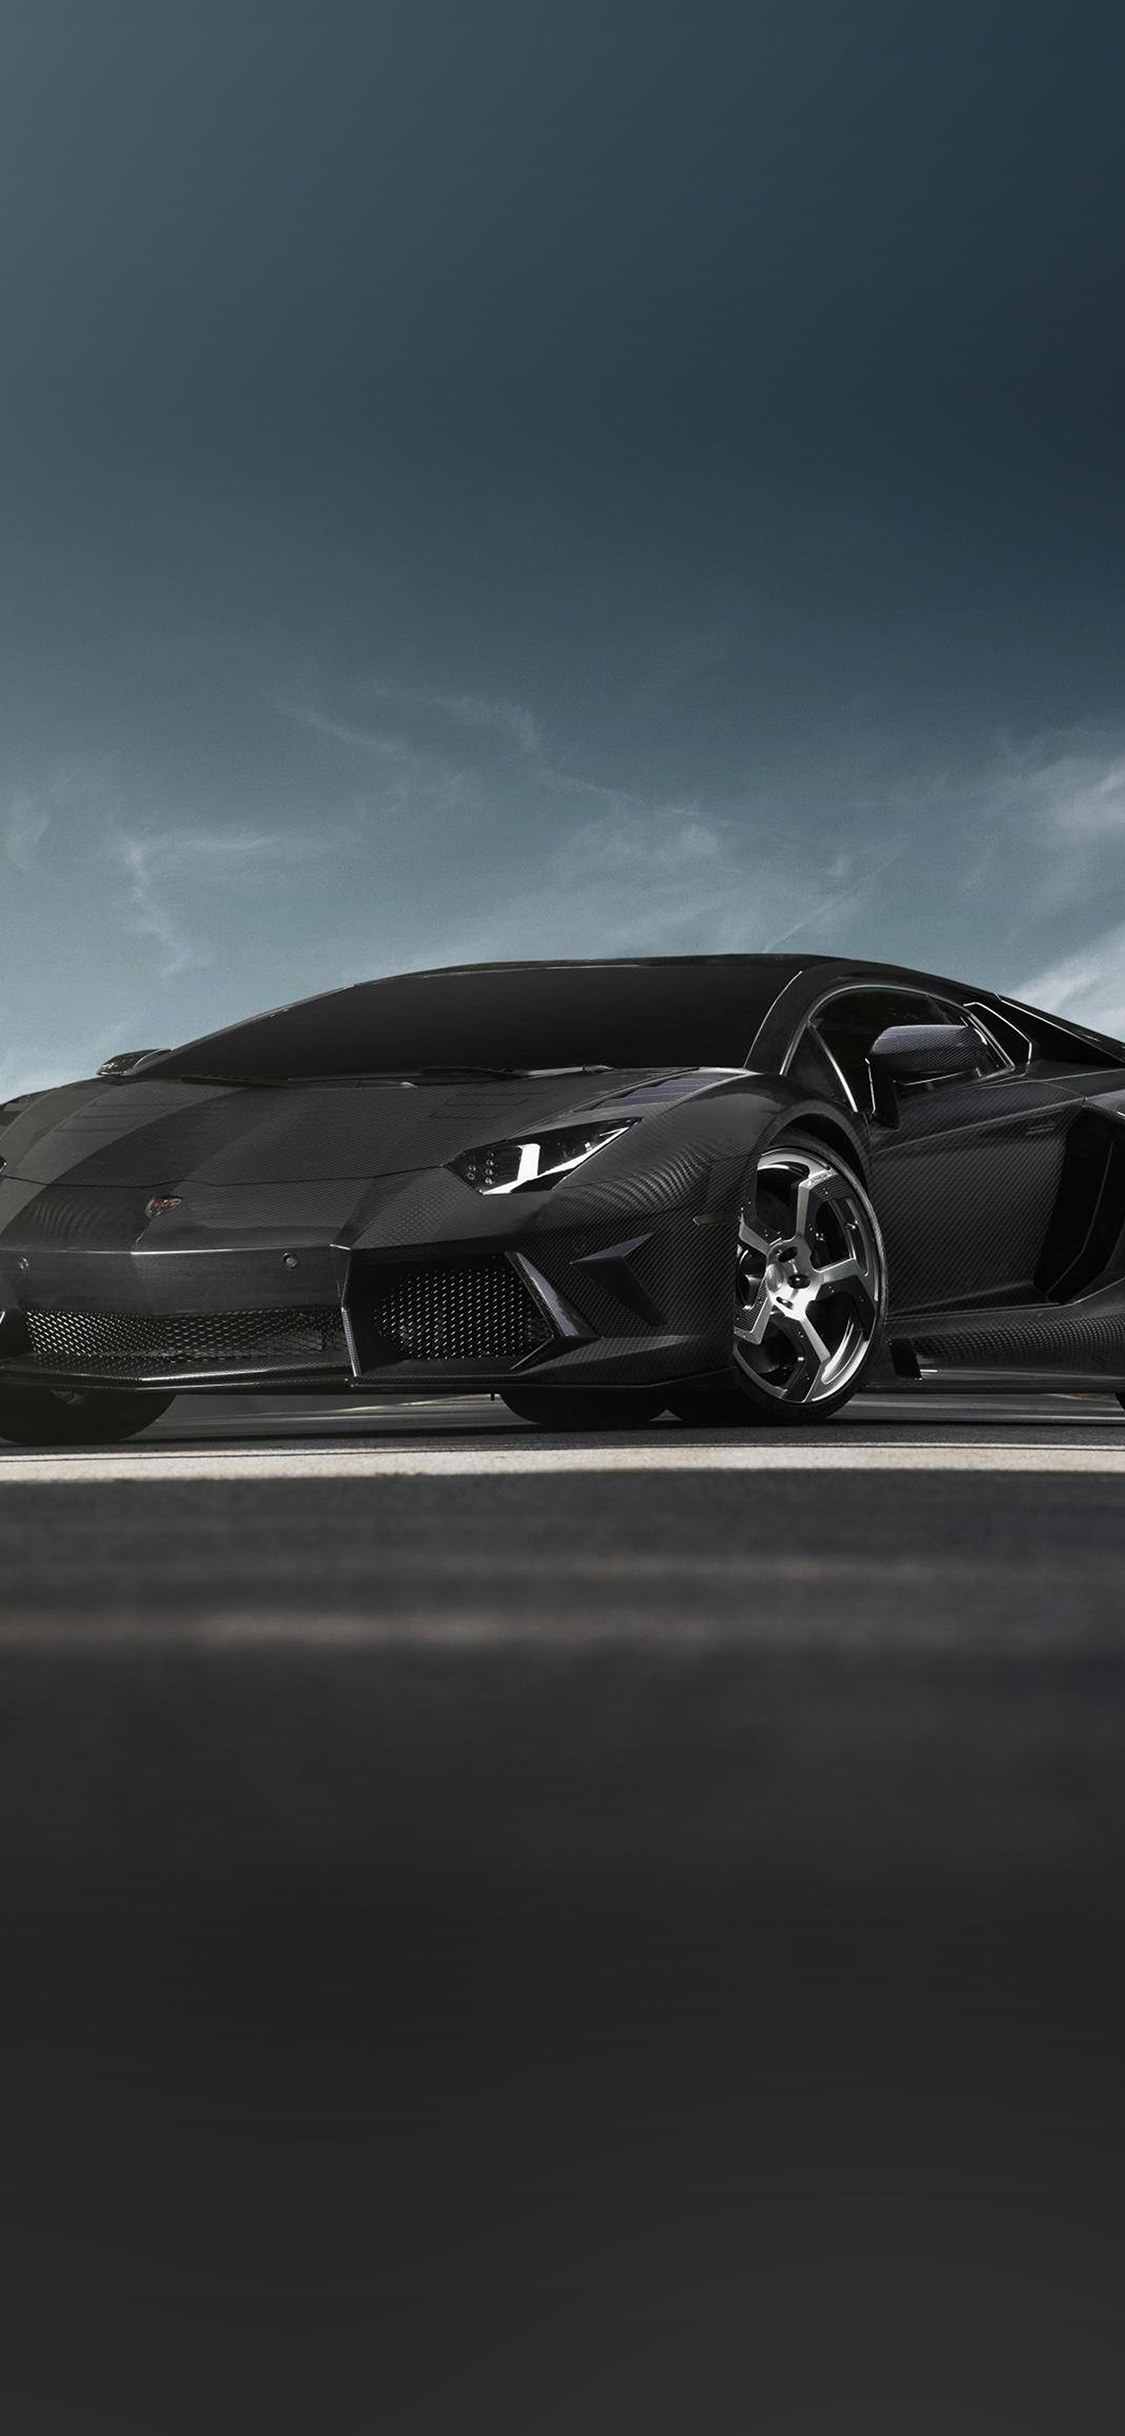 iPhoneXpapers.com-Apple-iPhone-wallpaper-ar42-lamborghini-aventador-supercar